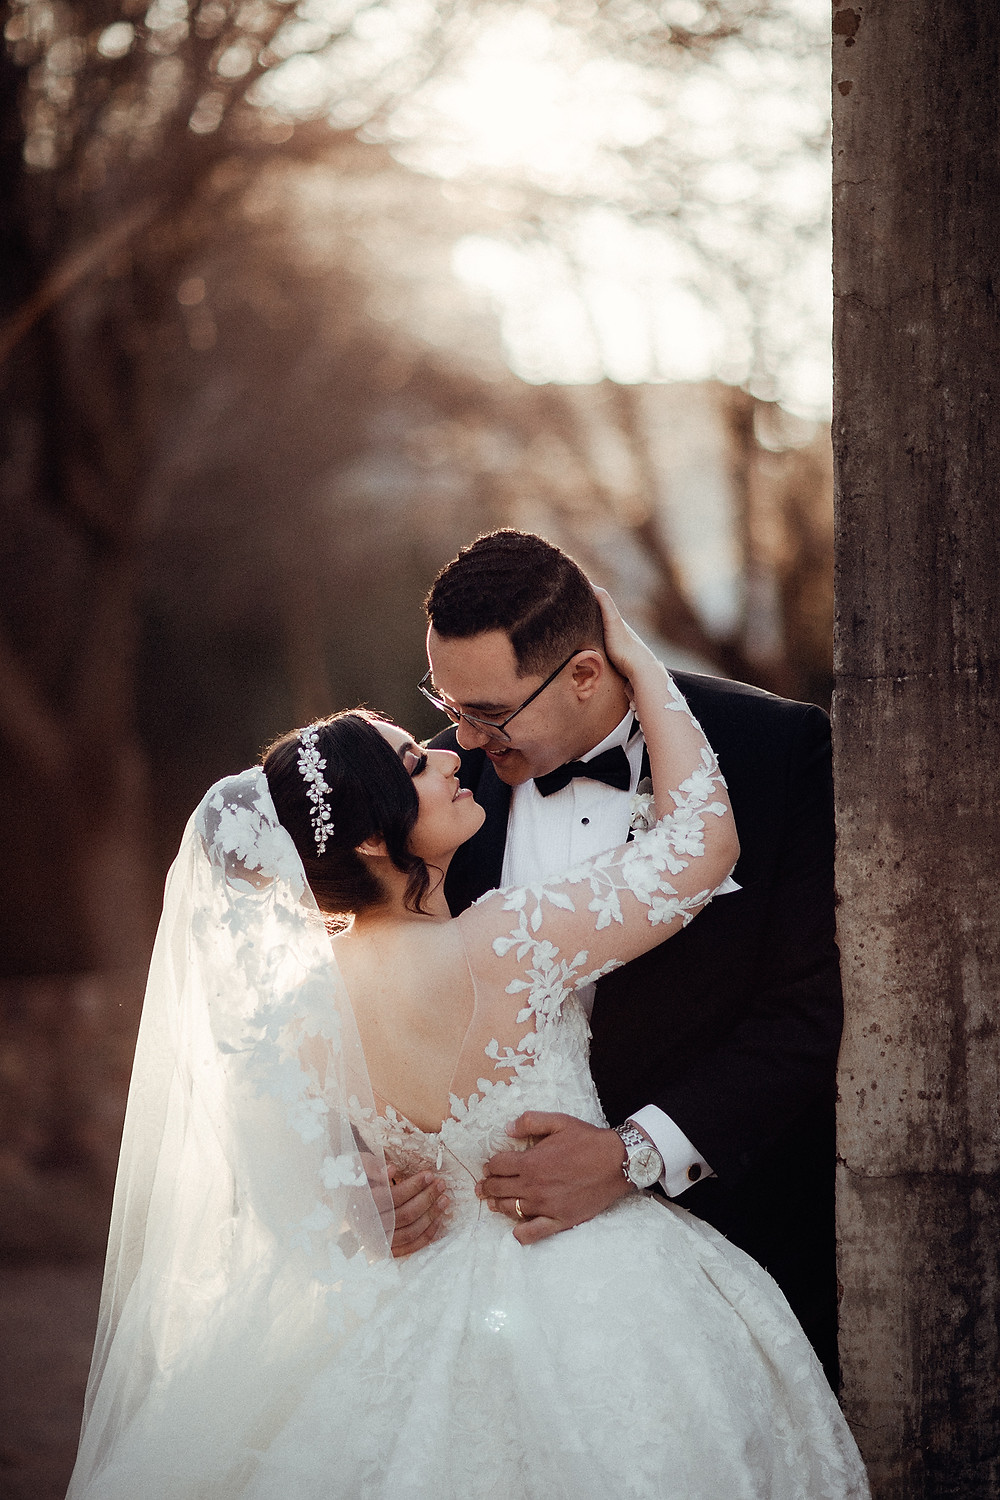 luxry wedding photographer de lumiere photography